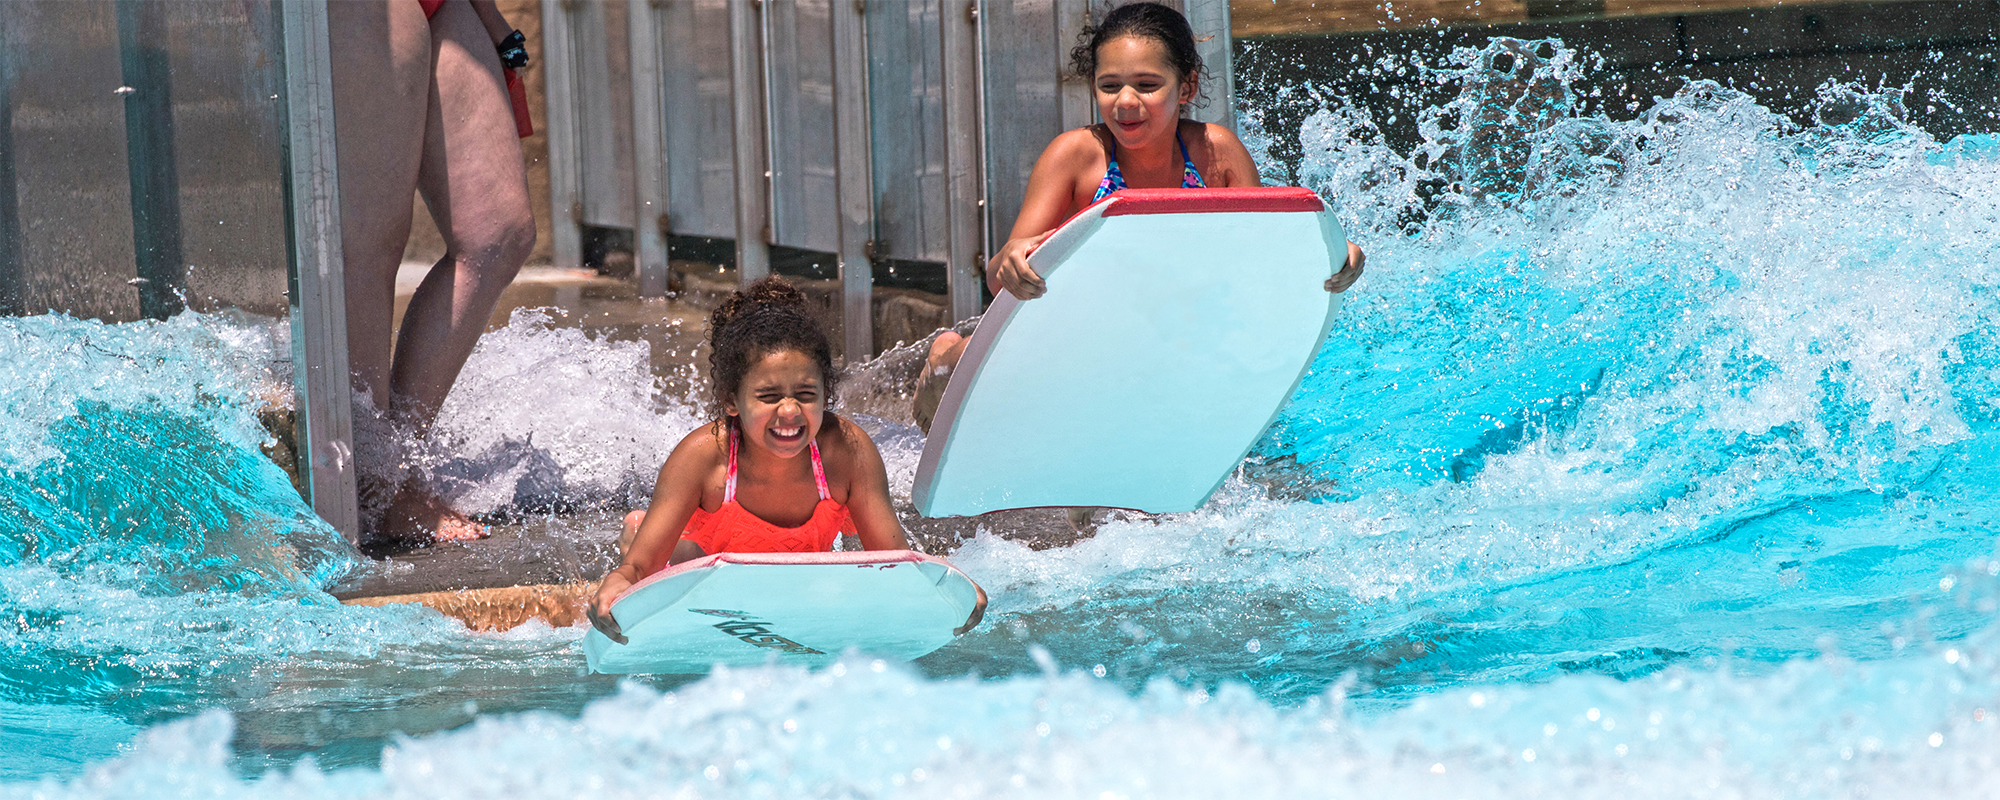 water ride boogie boarding pool